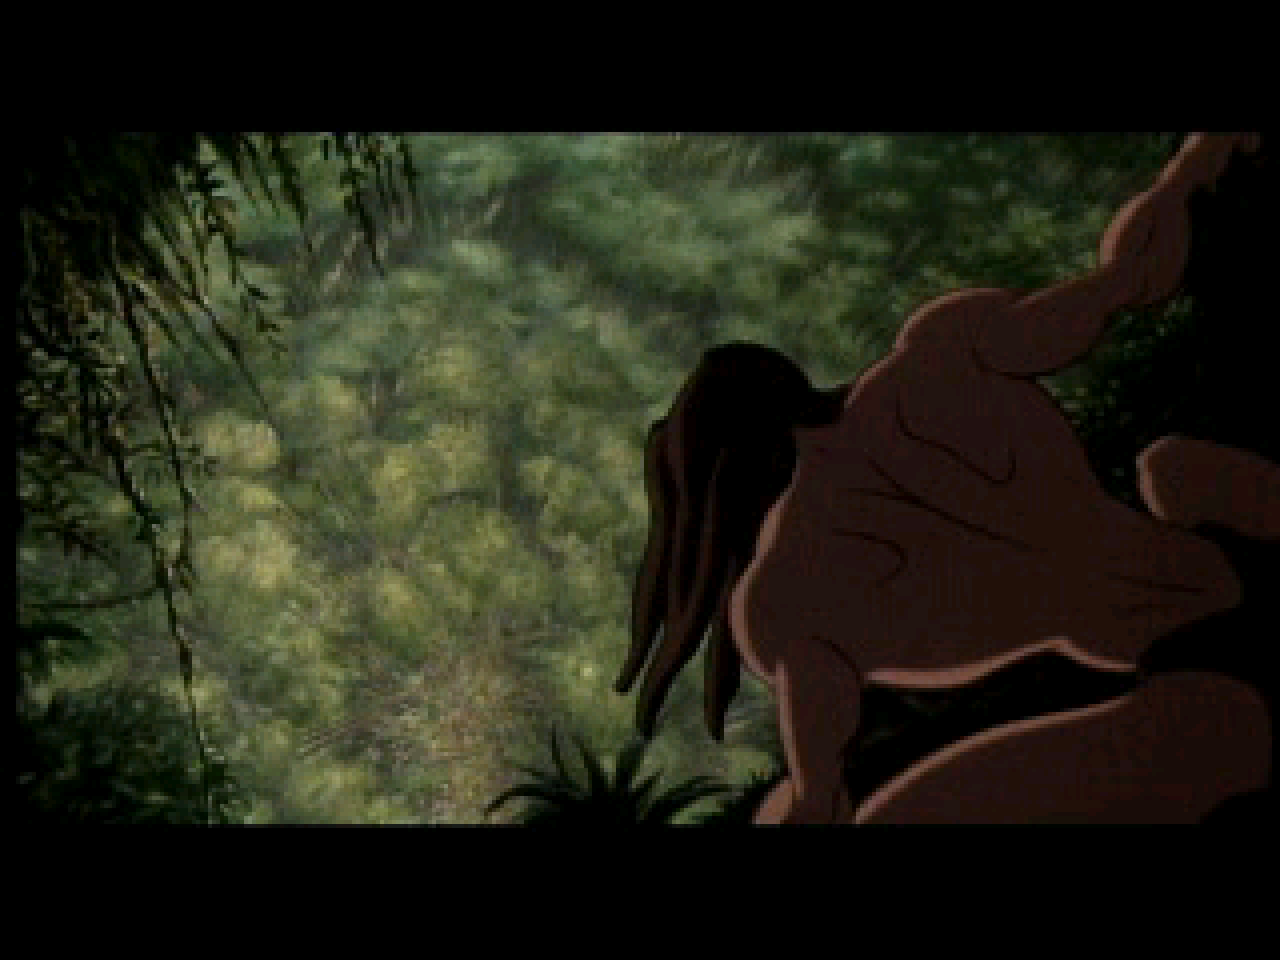 https://s3.eu-west-3.amazonaws.com/games.anthony-dessalles.com/Disney's Tarzan PS1 2020 - Screenshots/Disney's Tarzan-201122-174615.png